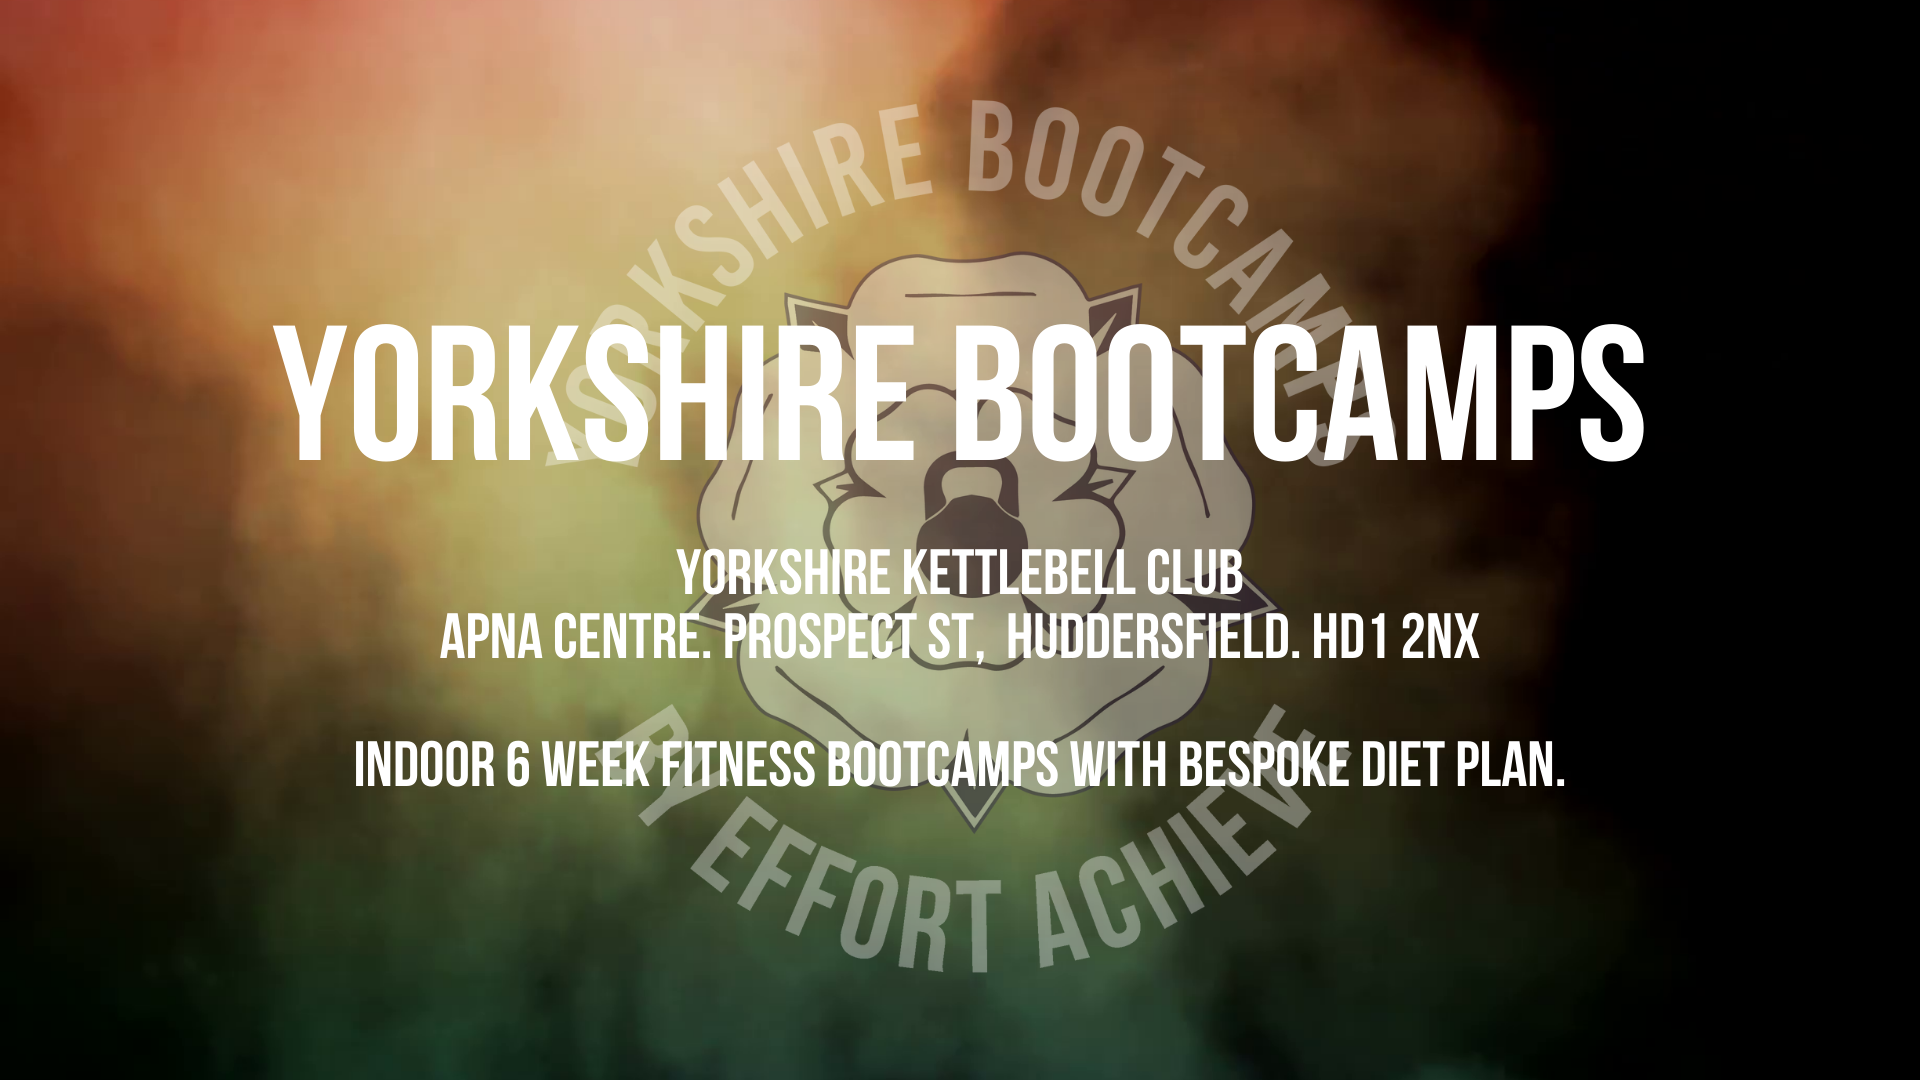 Yorkshire Bootcamps - Evenings